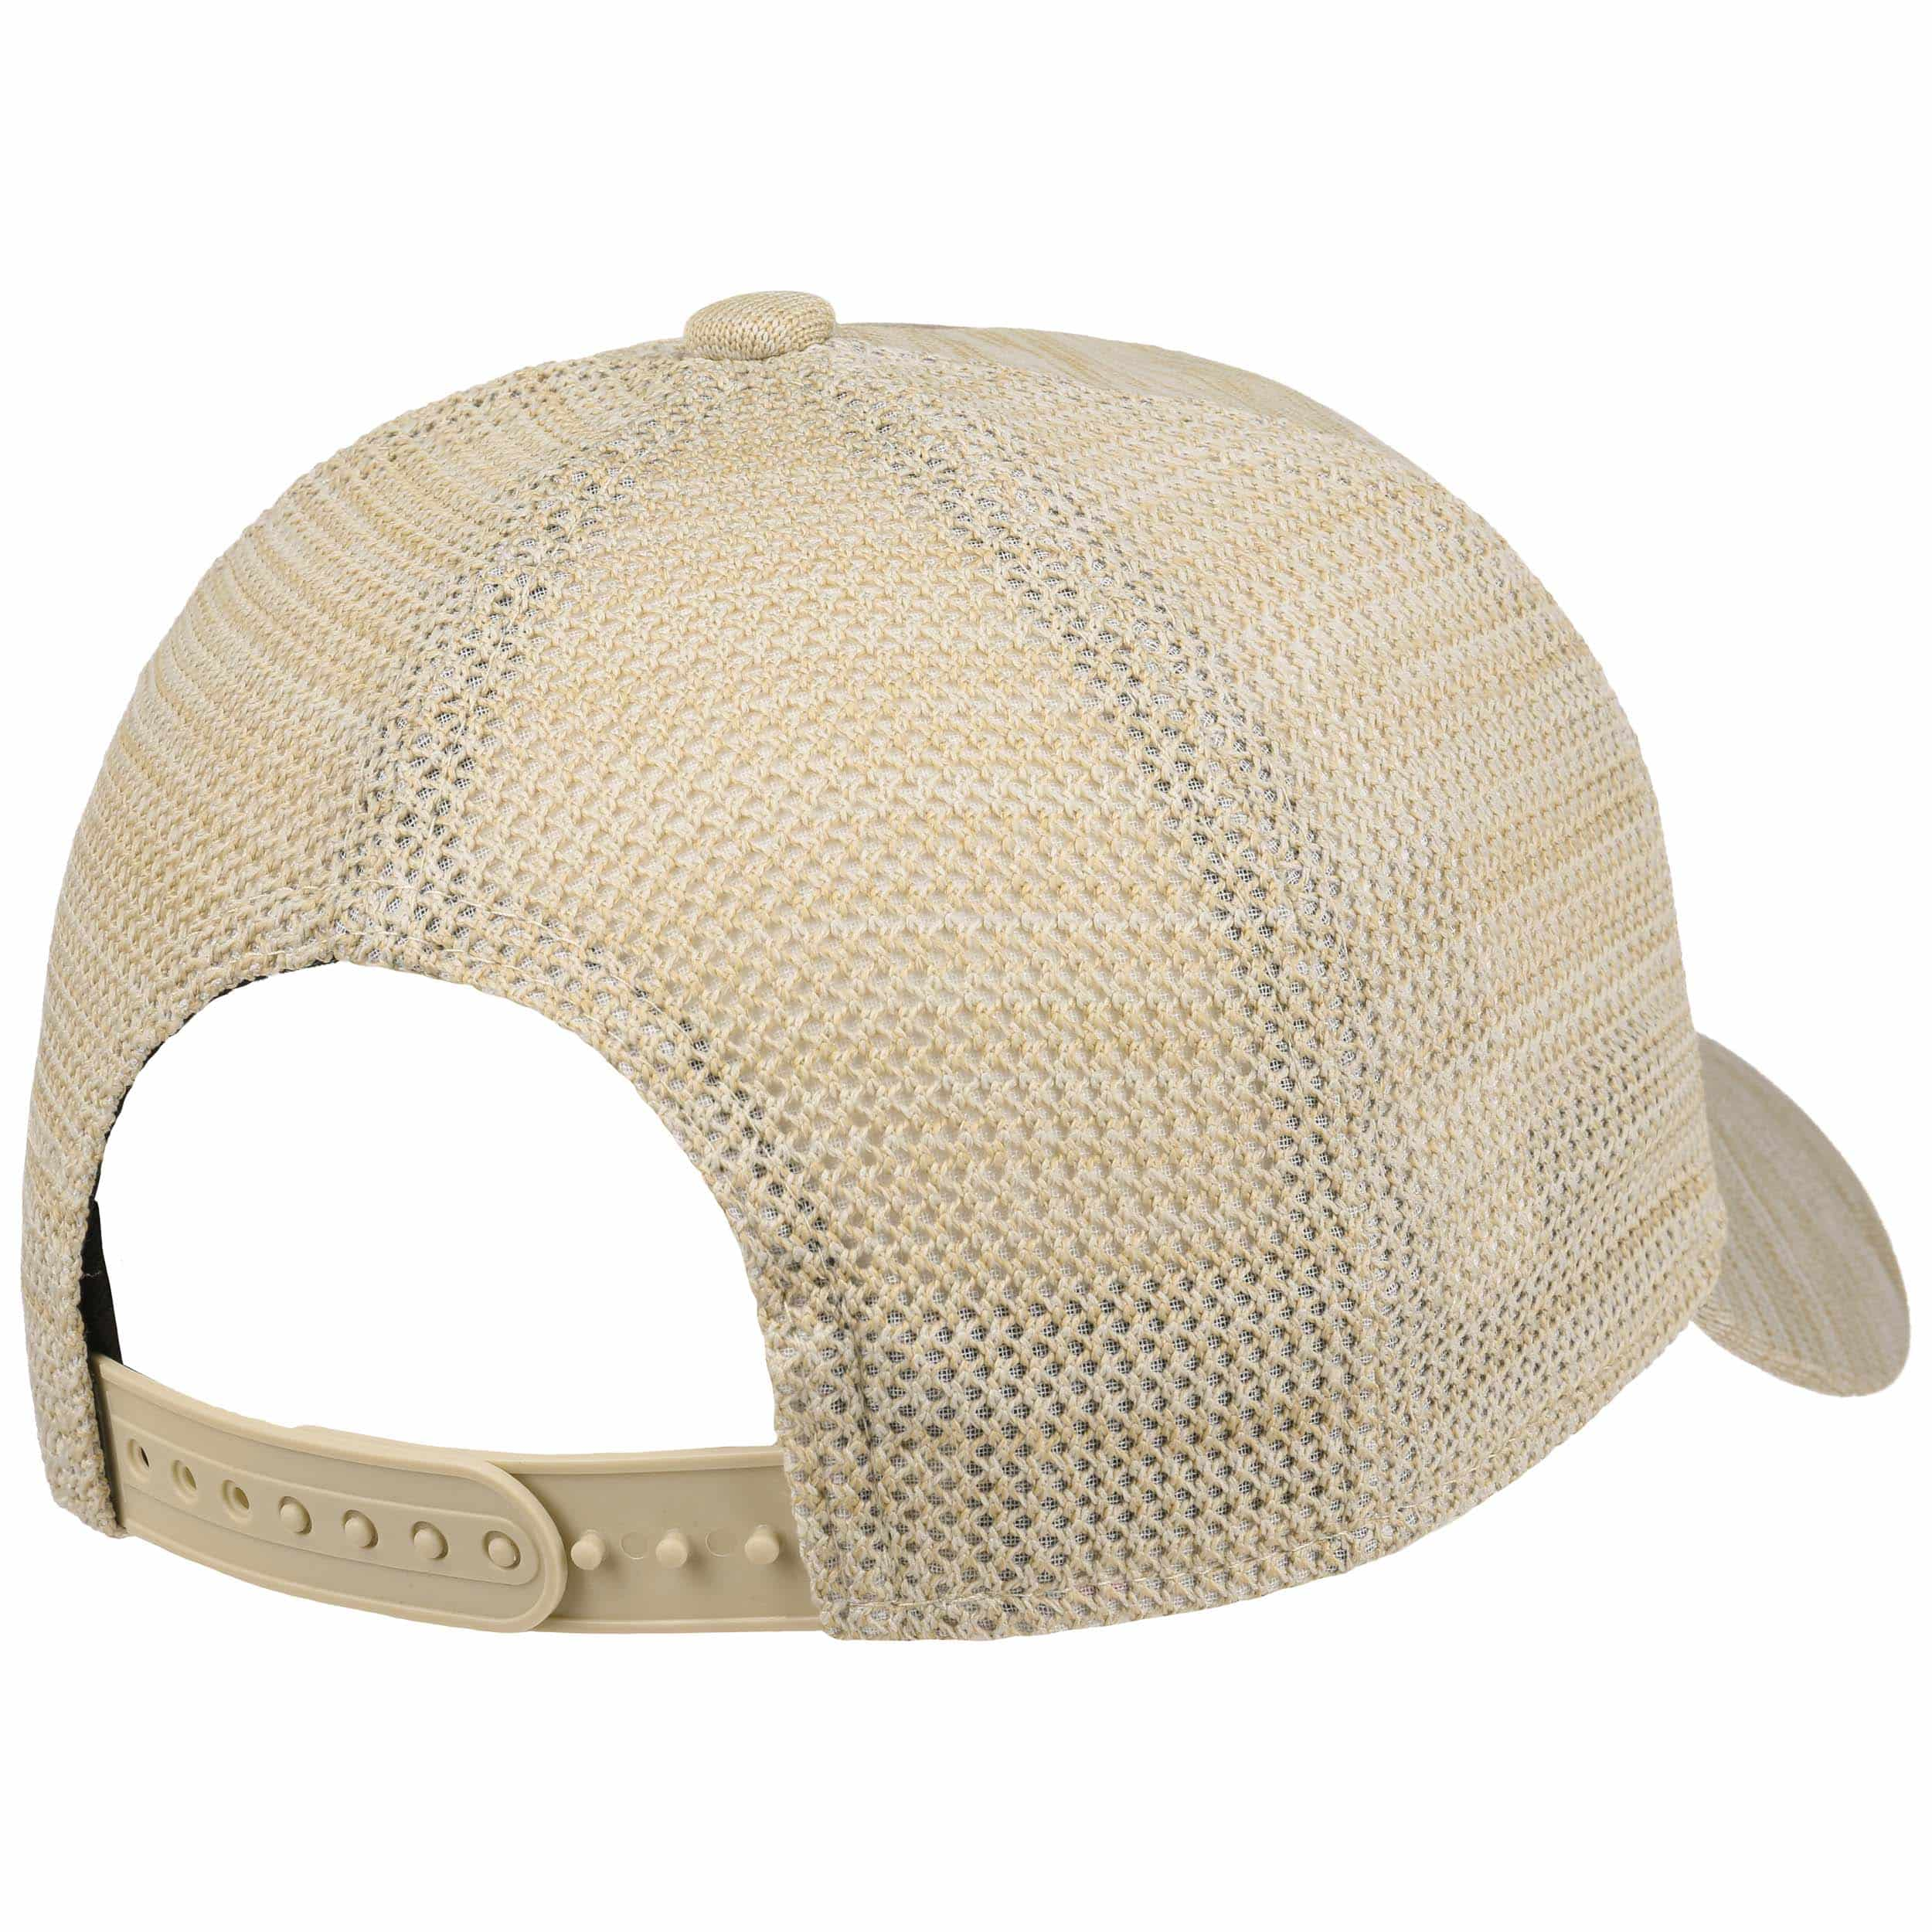 ... 9Forty Engineered Fit Dodgers Cap by New Era - beige 3 ... 283146903941